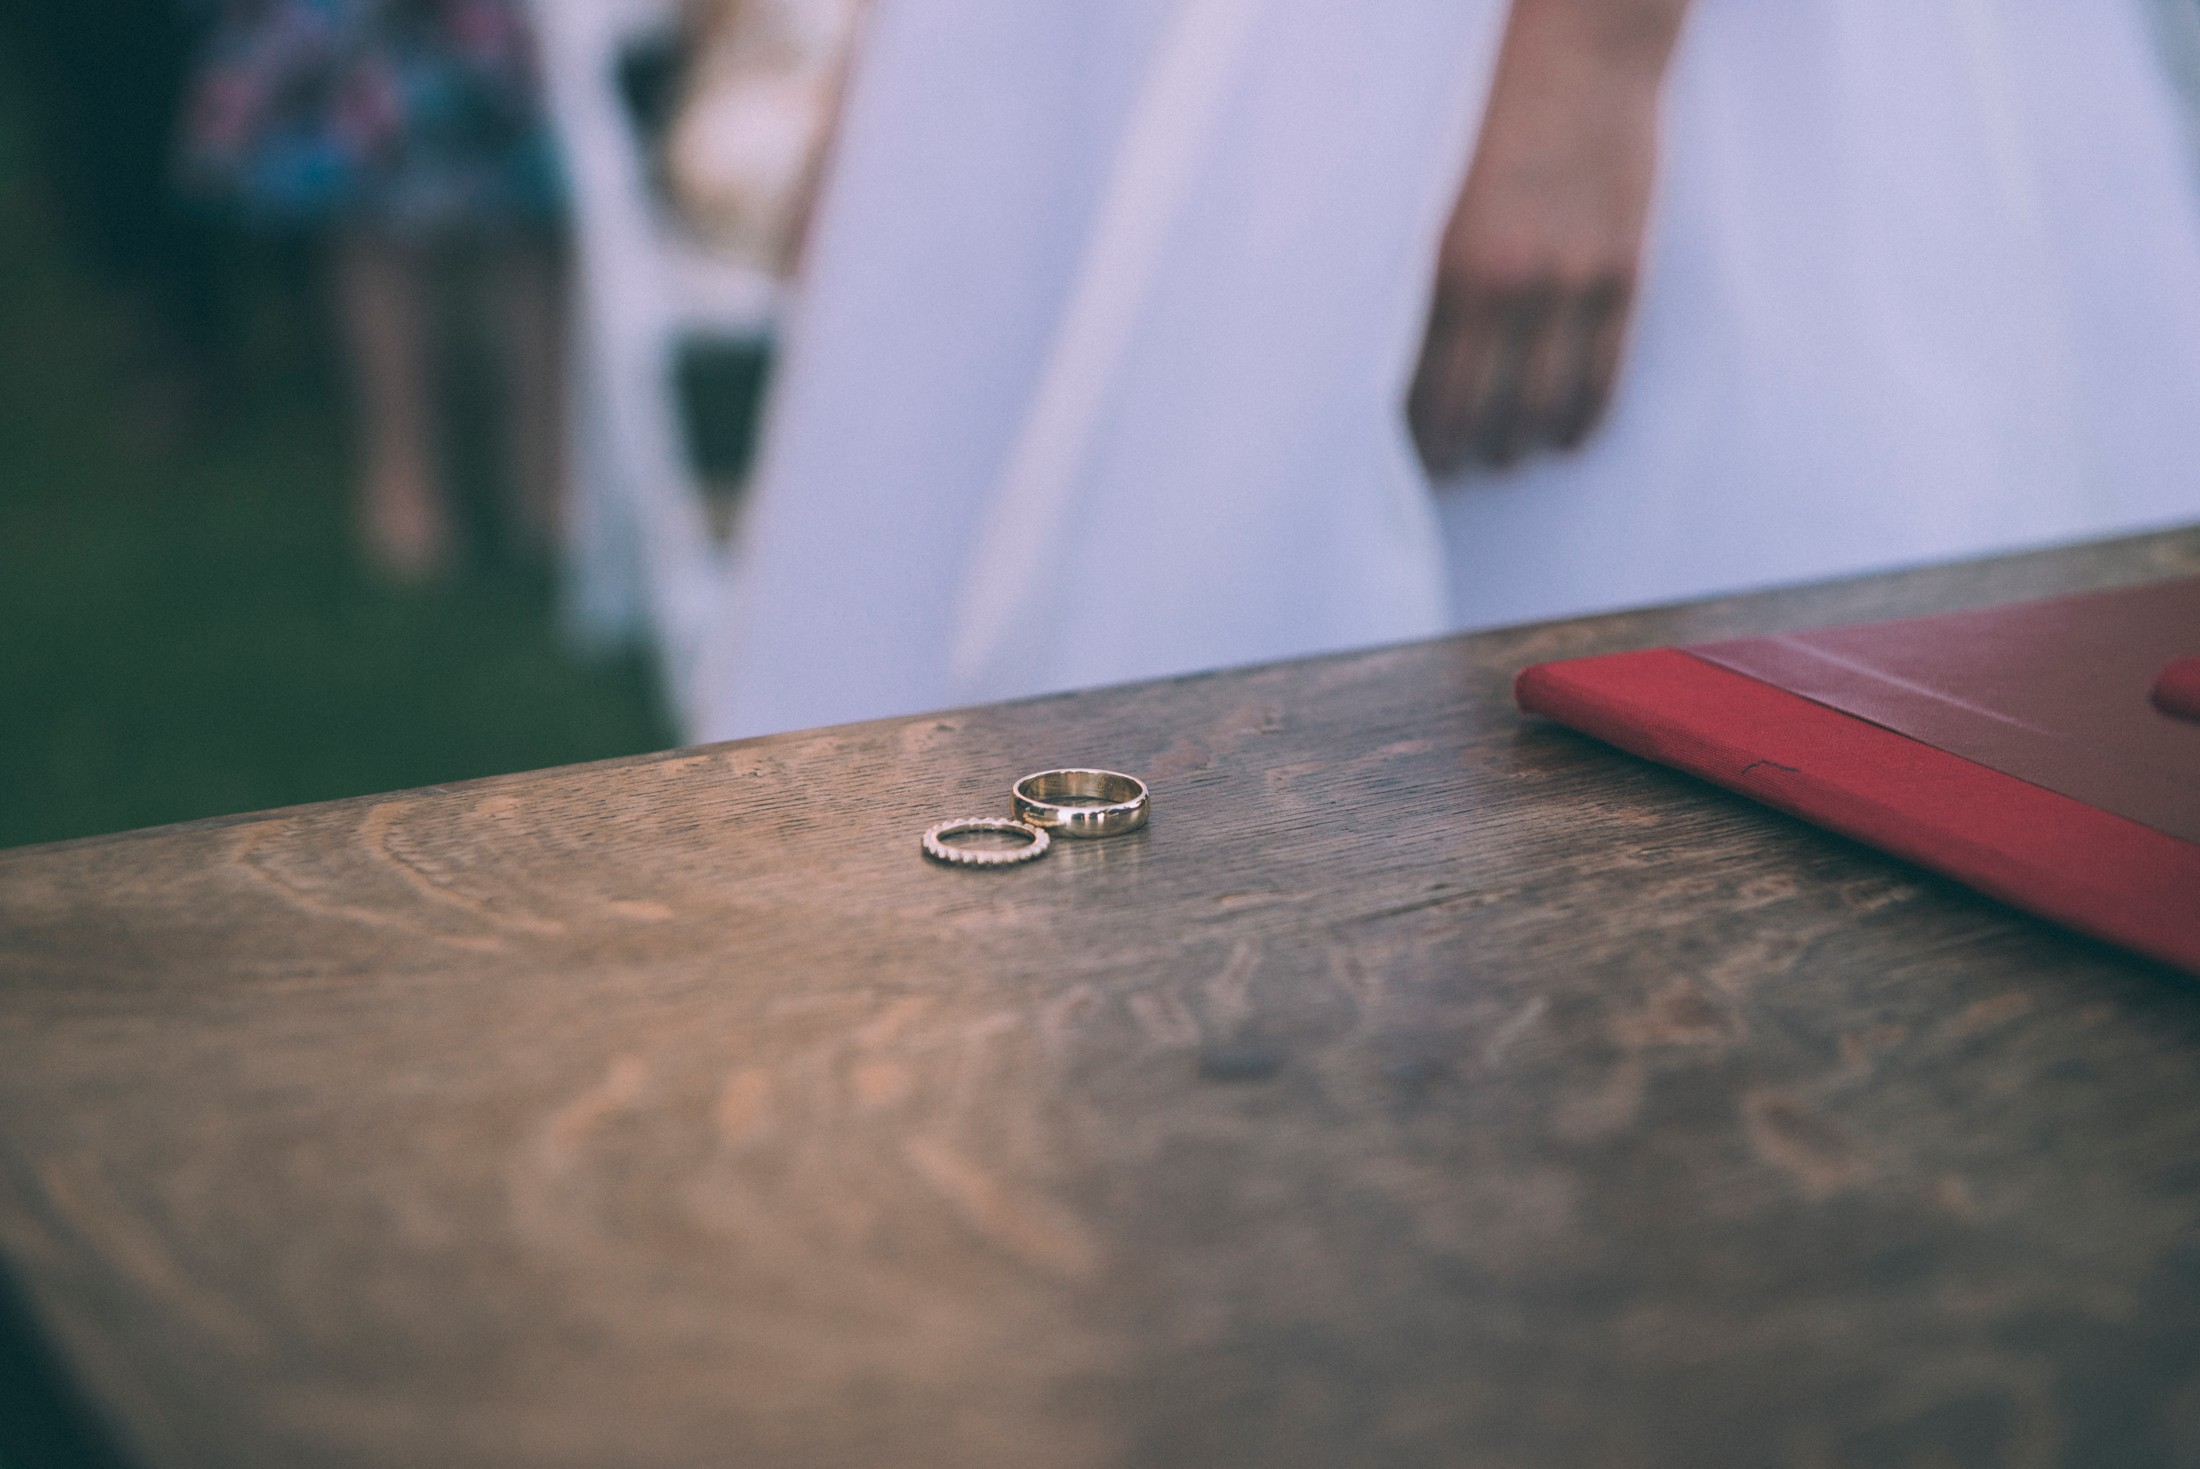 wedding rings on the table during the ceremony